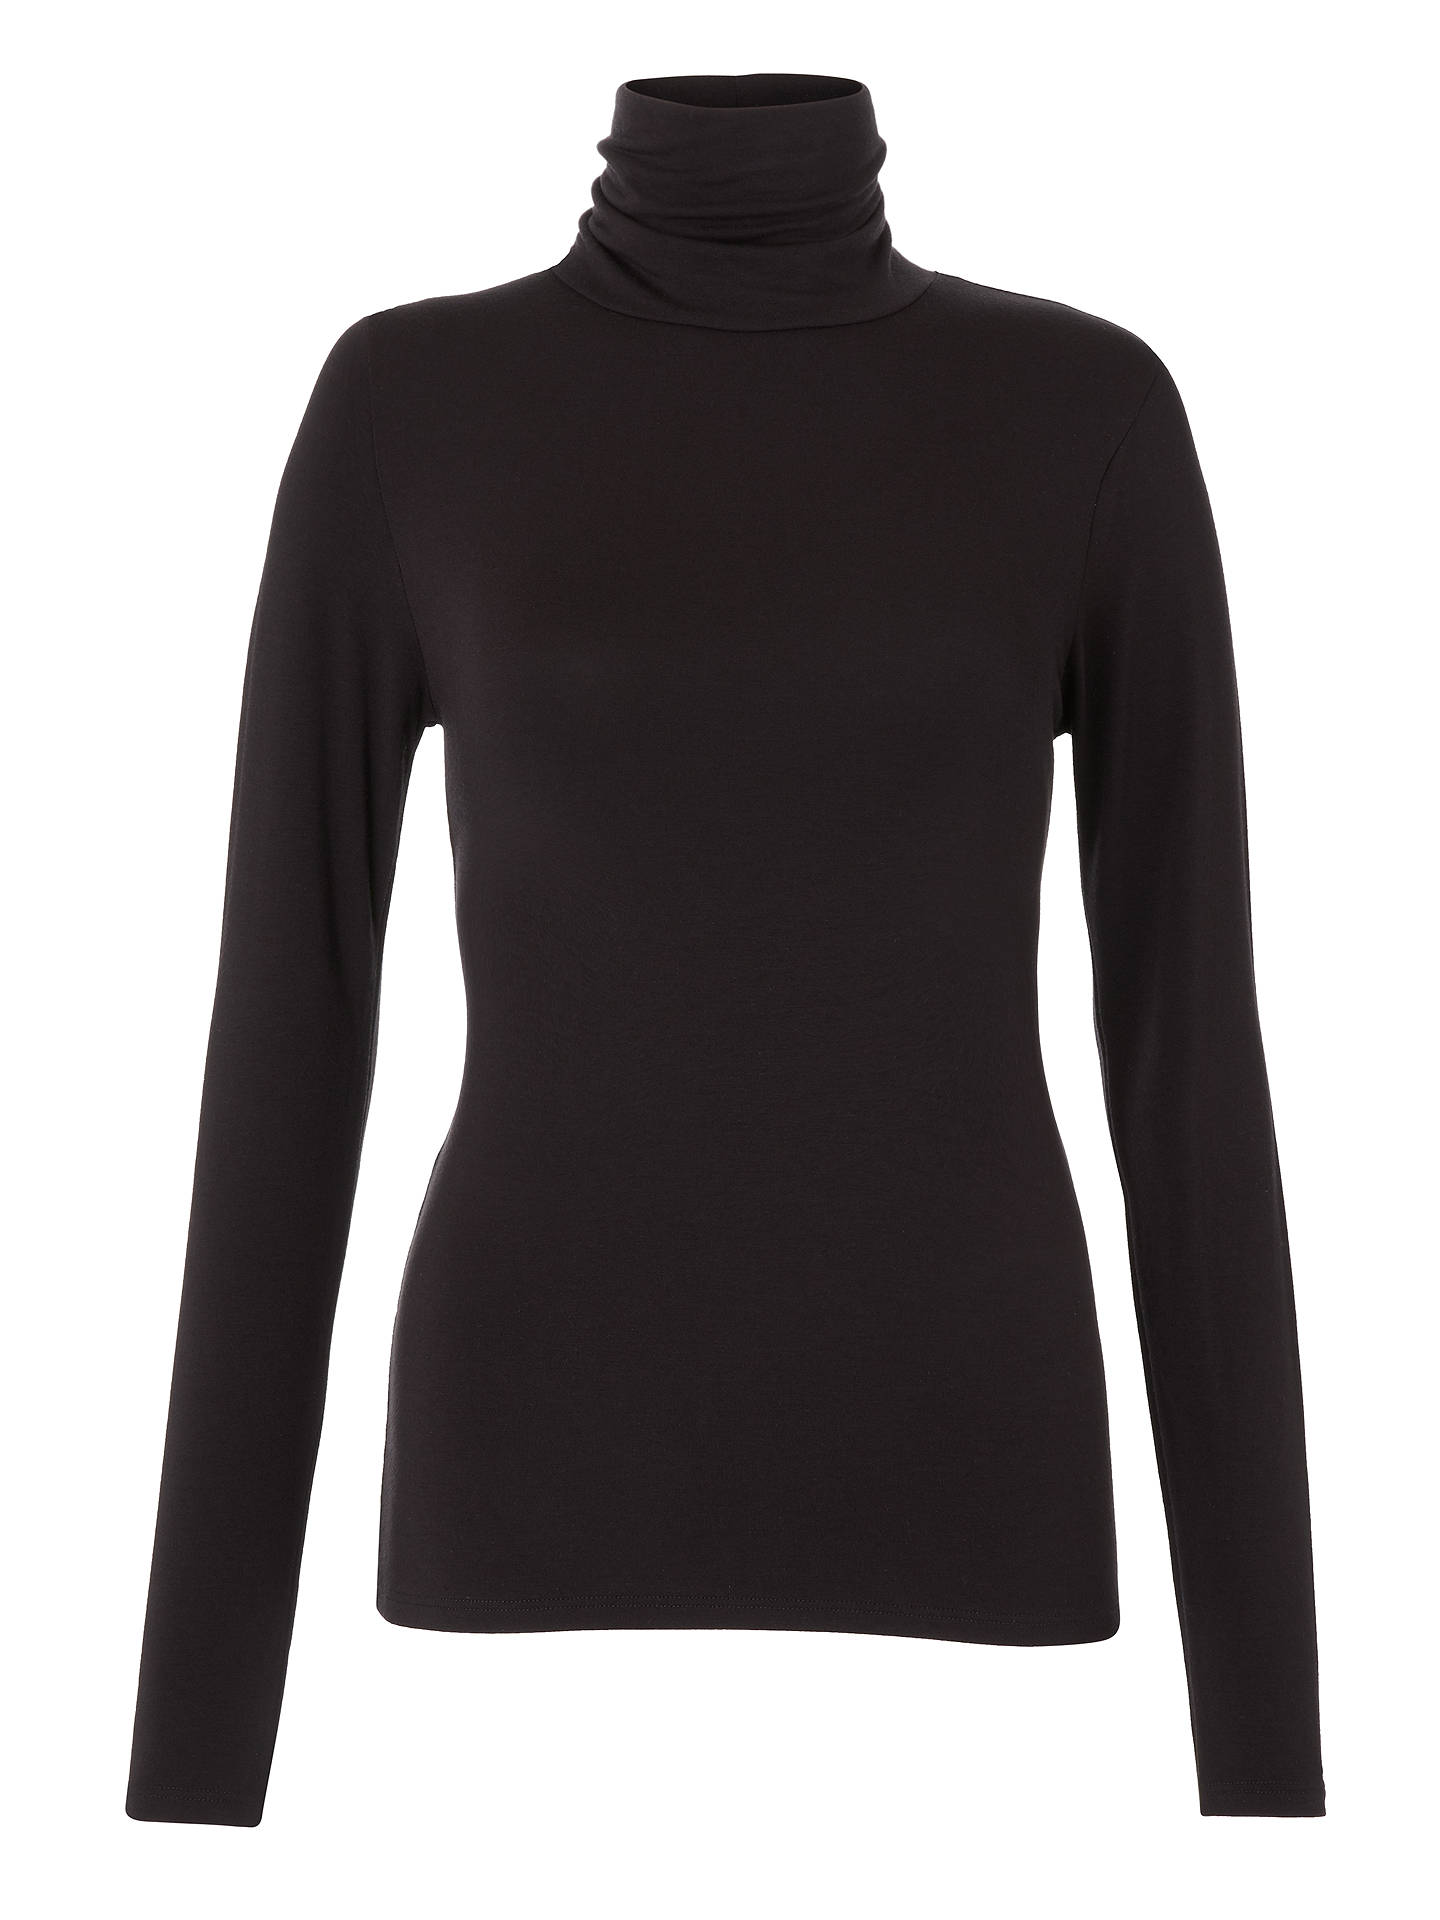 BuyJohn Lewis & Partners Heat Generating Thermal Roll Neck, Black, 8-10 Online at johnlewis.com